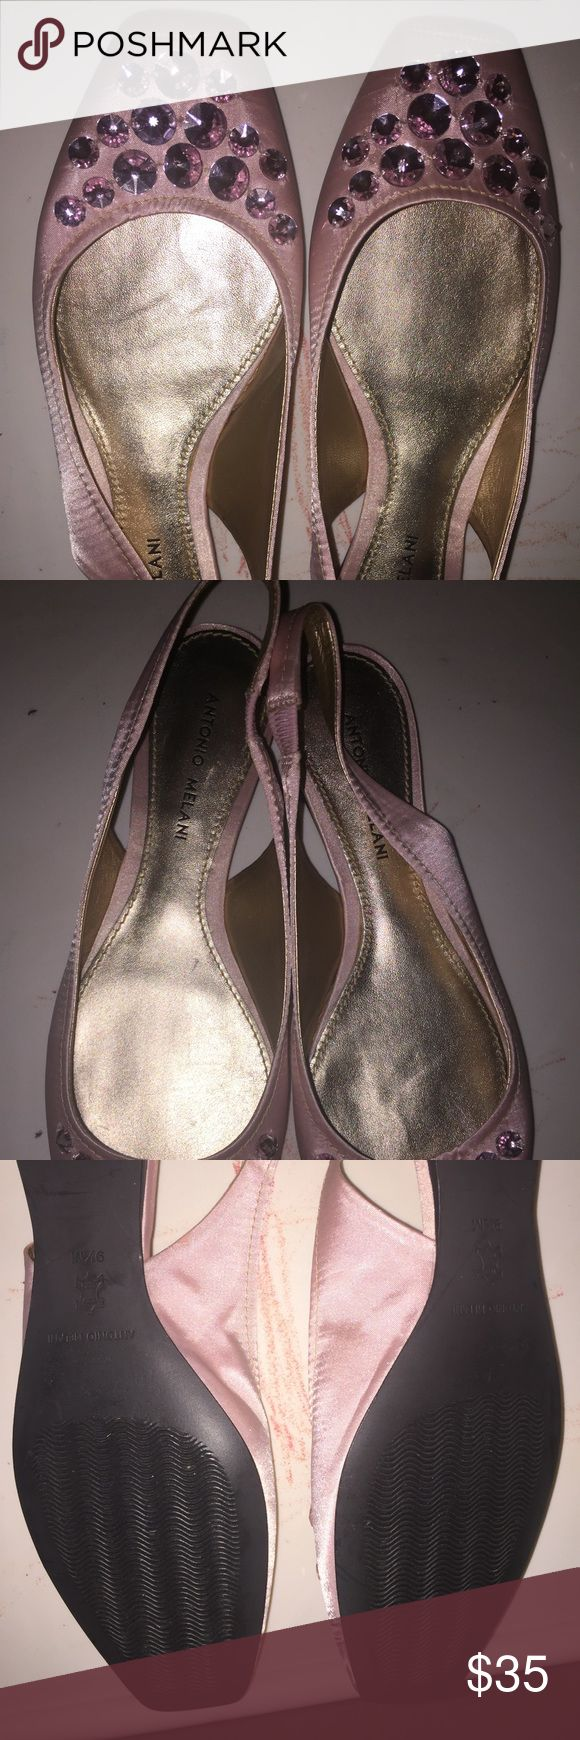 """Pink Bejeweled Flats🎀 """"Pretty in Pink""""Ballerina Slingback Flats with Pretty Pink Jewels at the toe. 💎   NWOT. ANTONIO MELANI Shoes Flats & Loafers"""